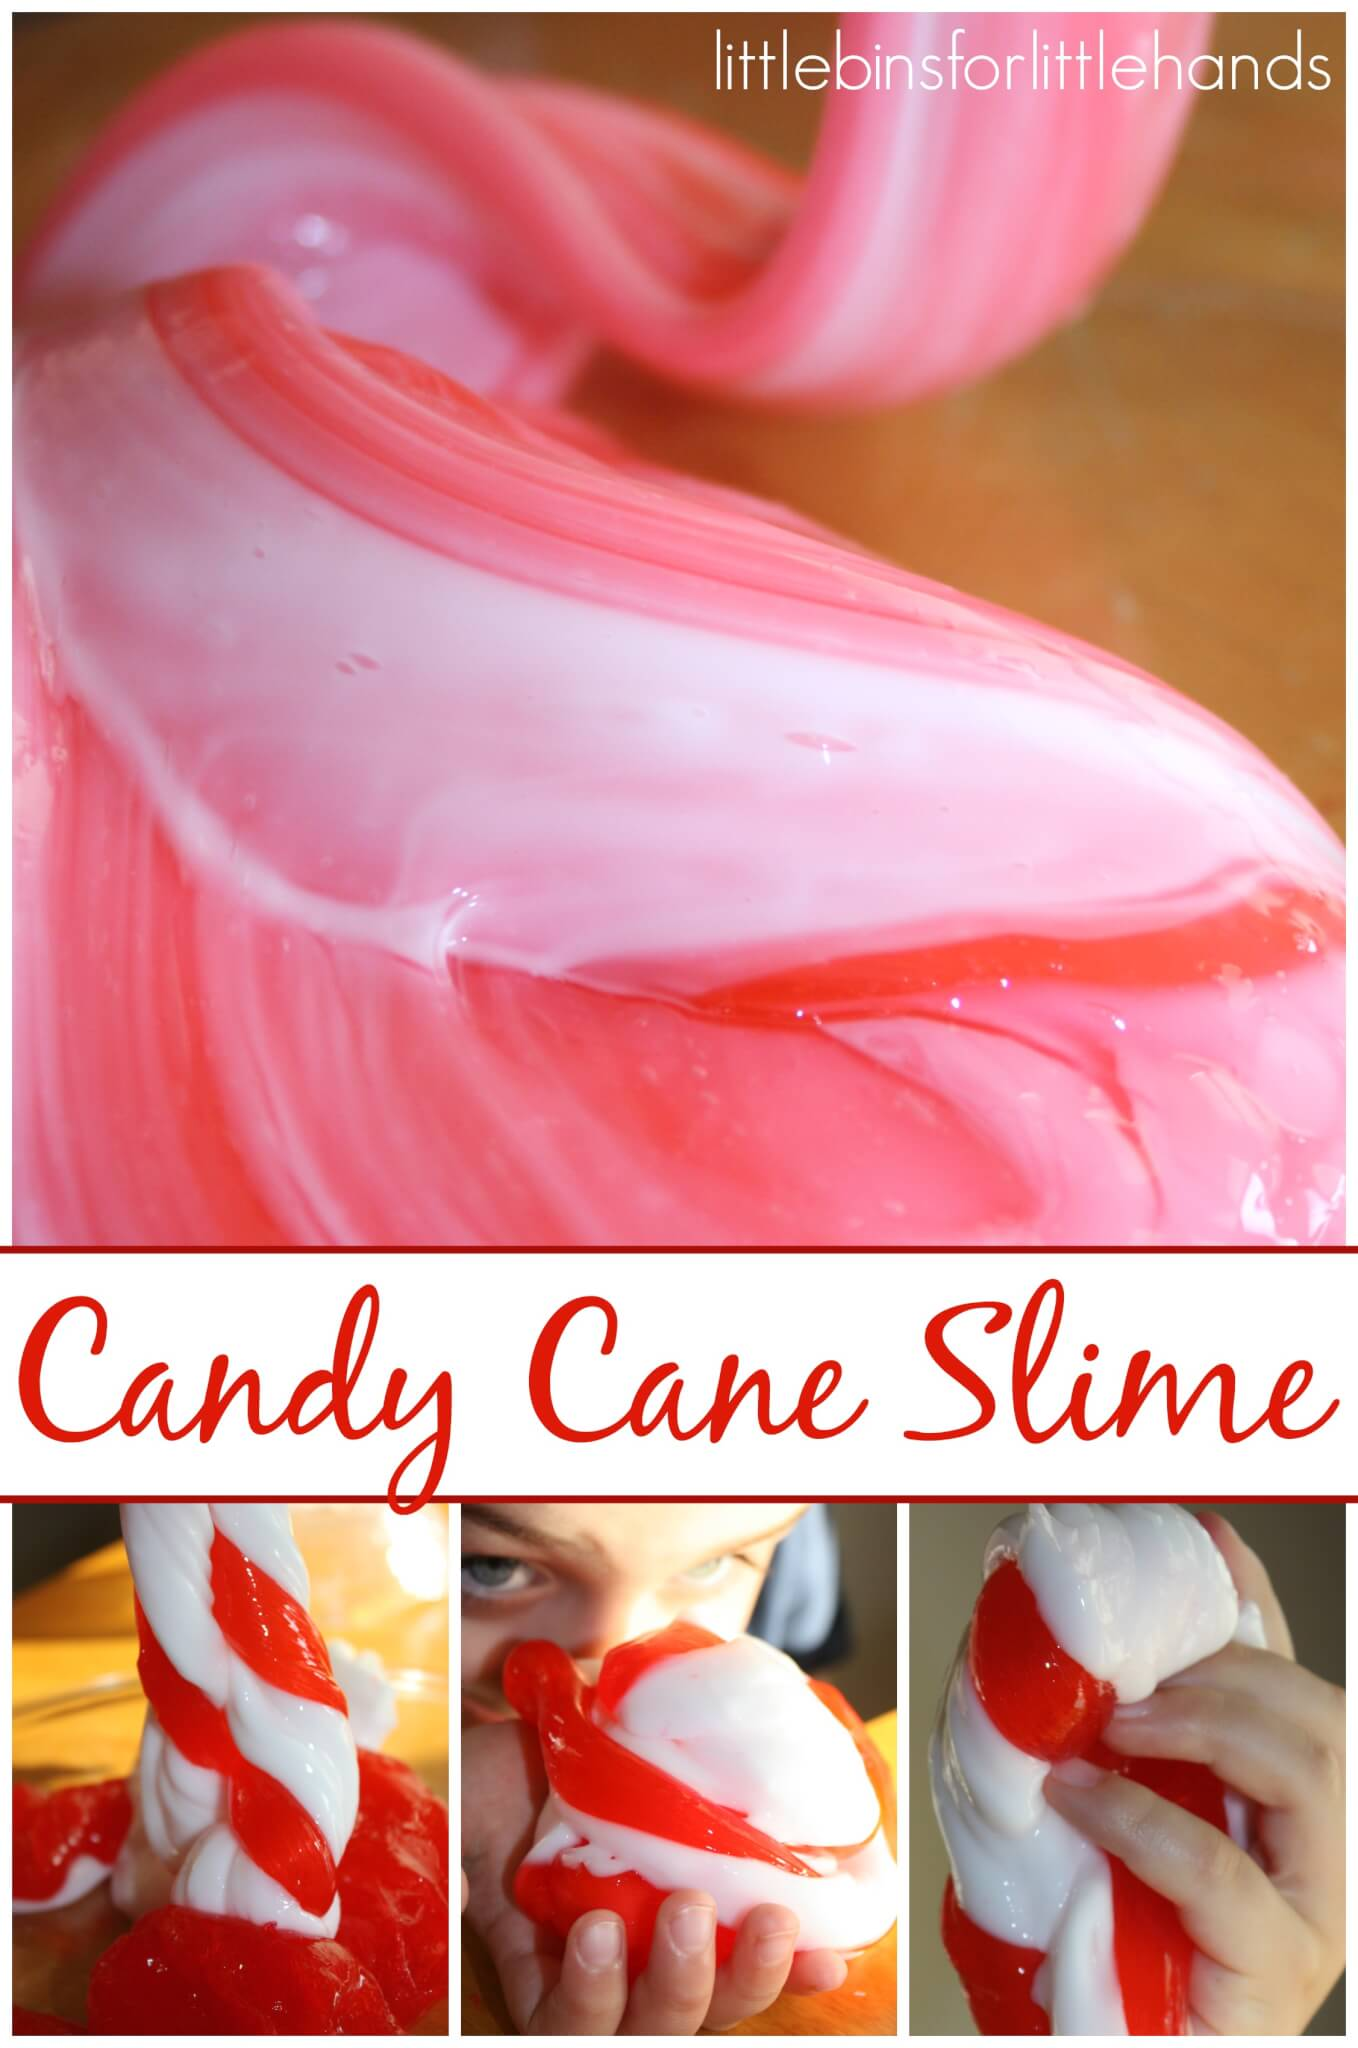 Candy Cane Slime Christmas Science Activity